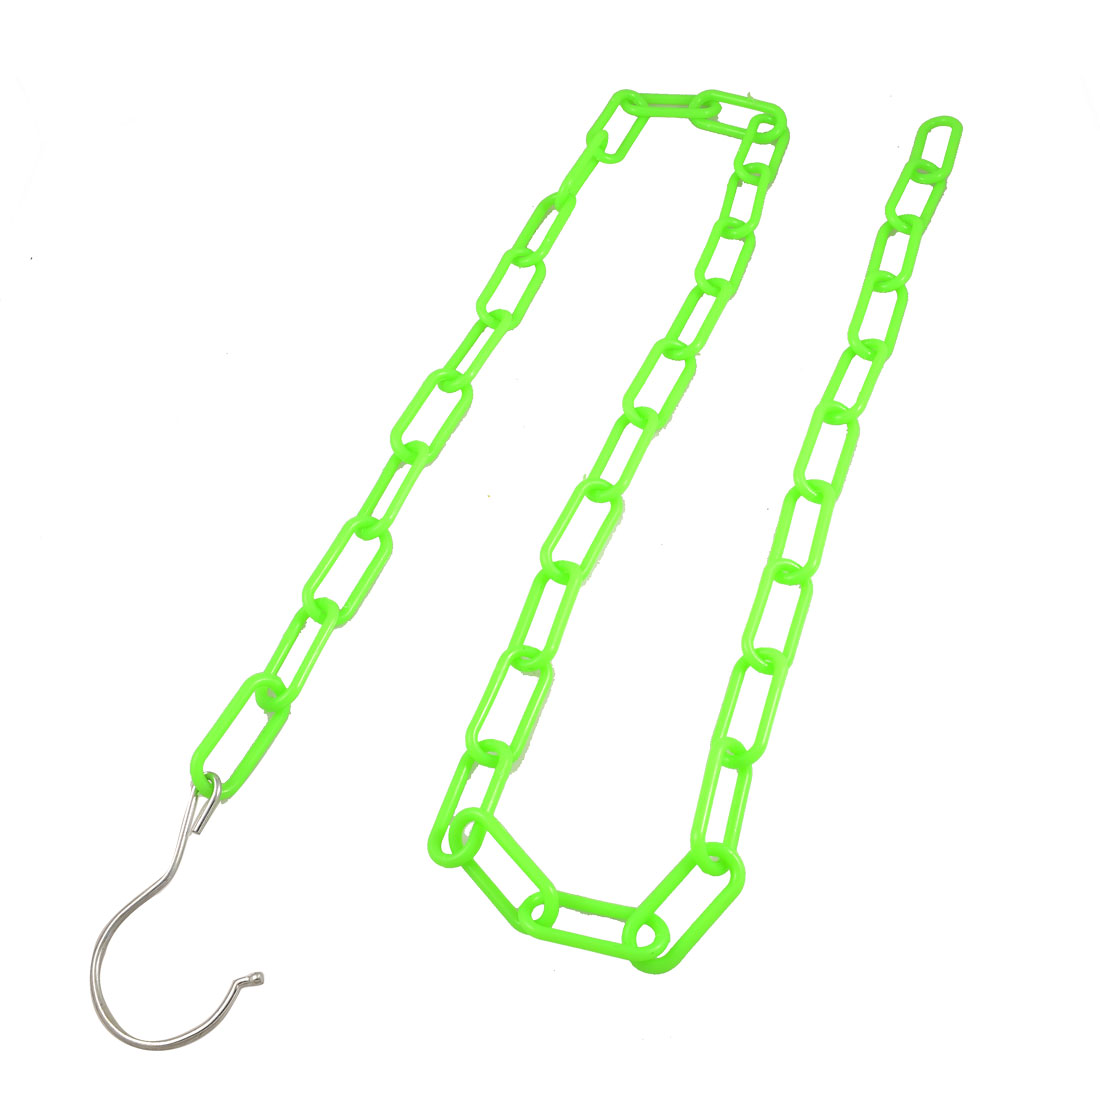 Solid Individually Bright Green Plastic Extension Hanger Chain Clothesline